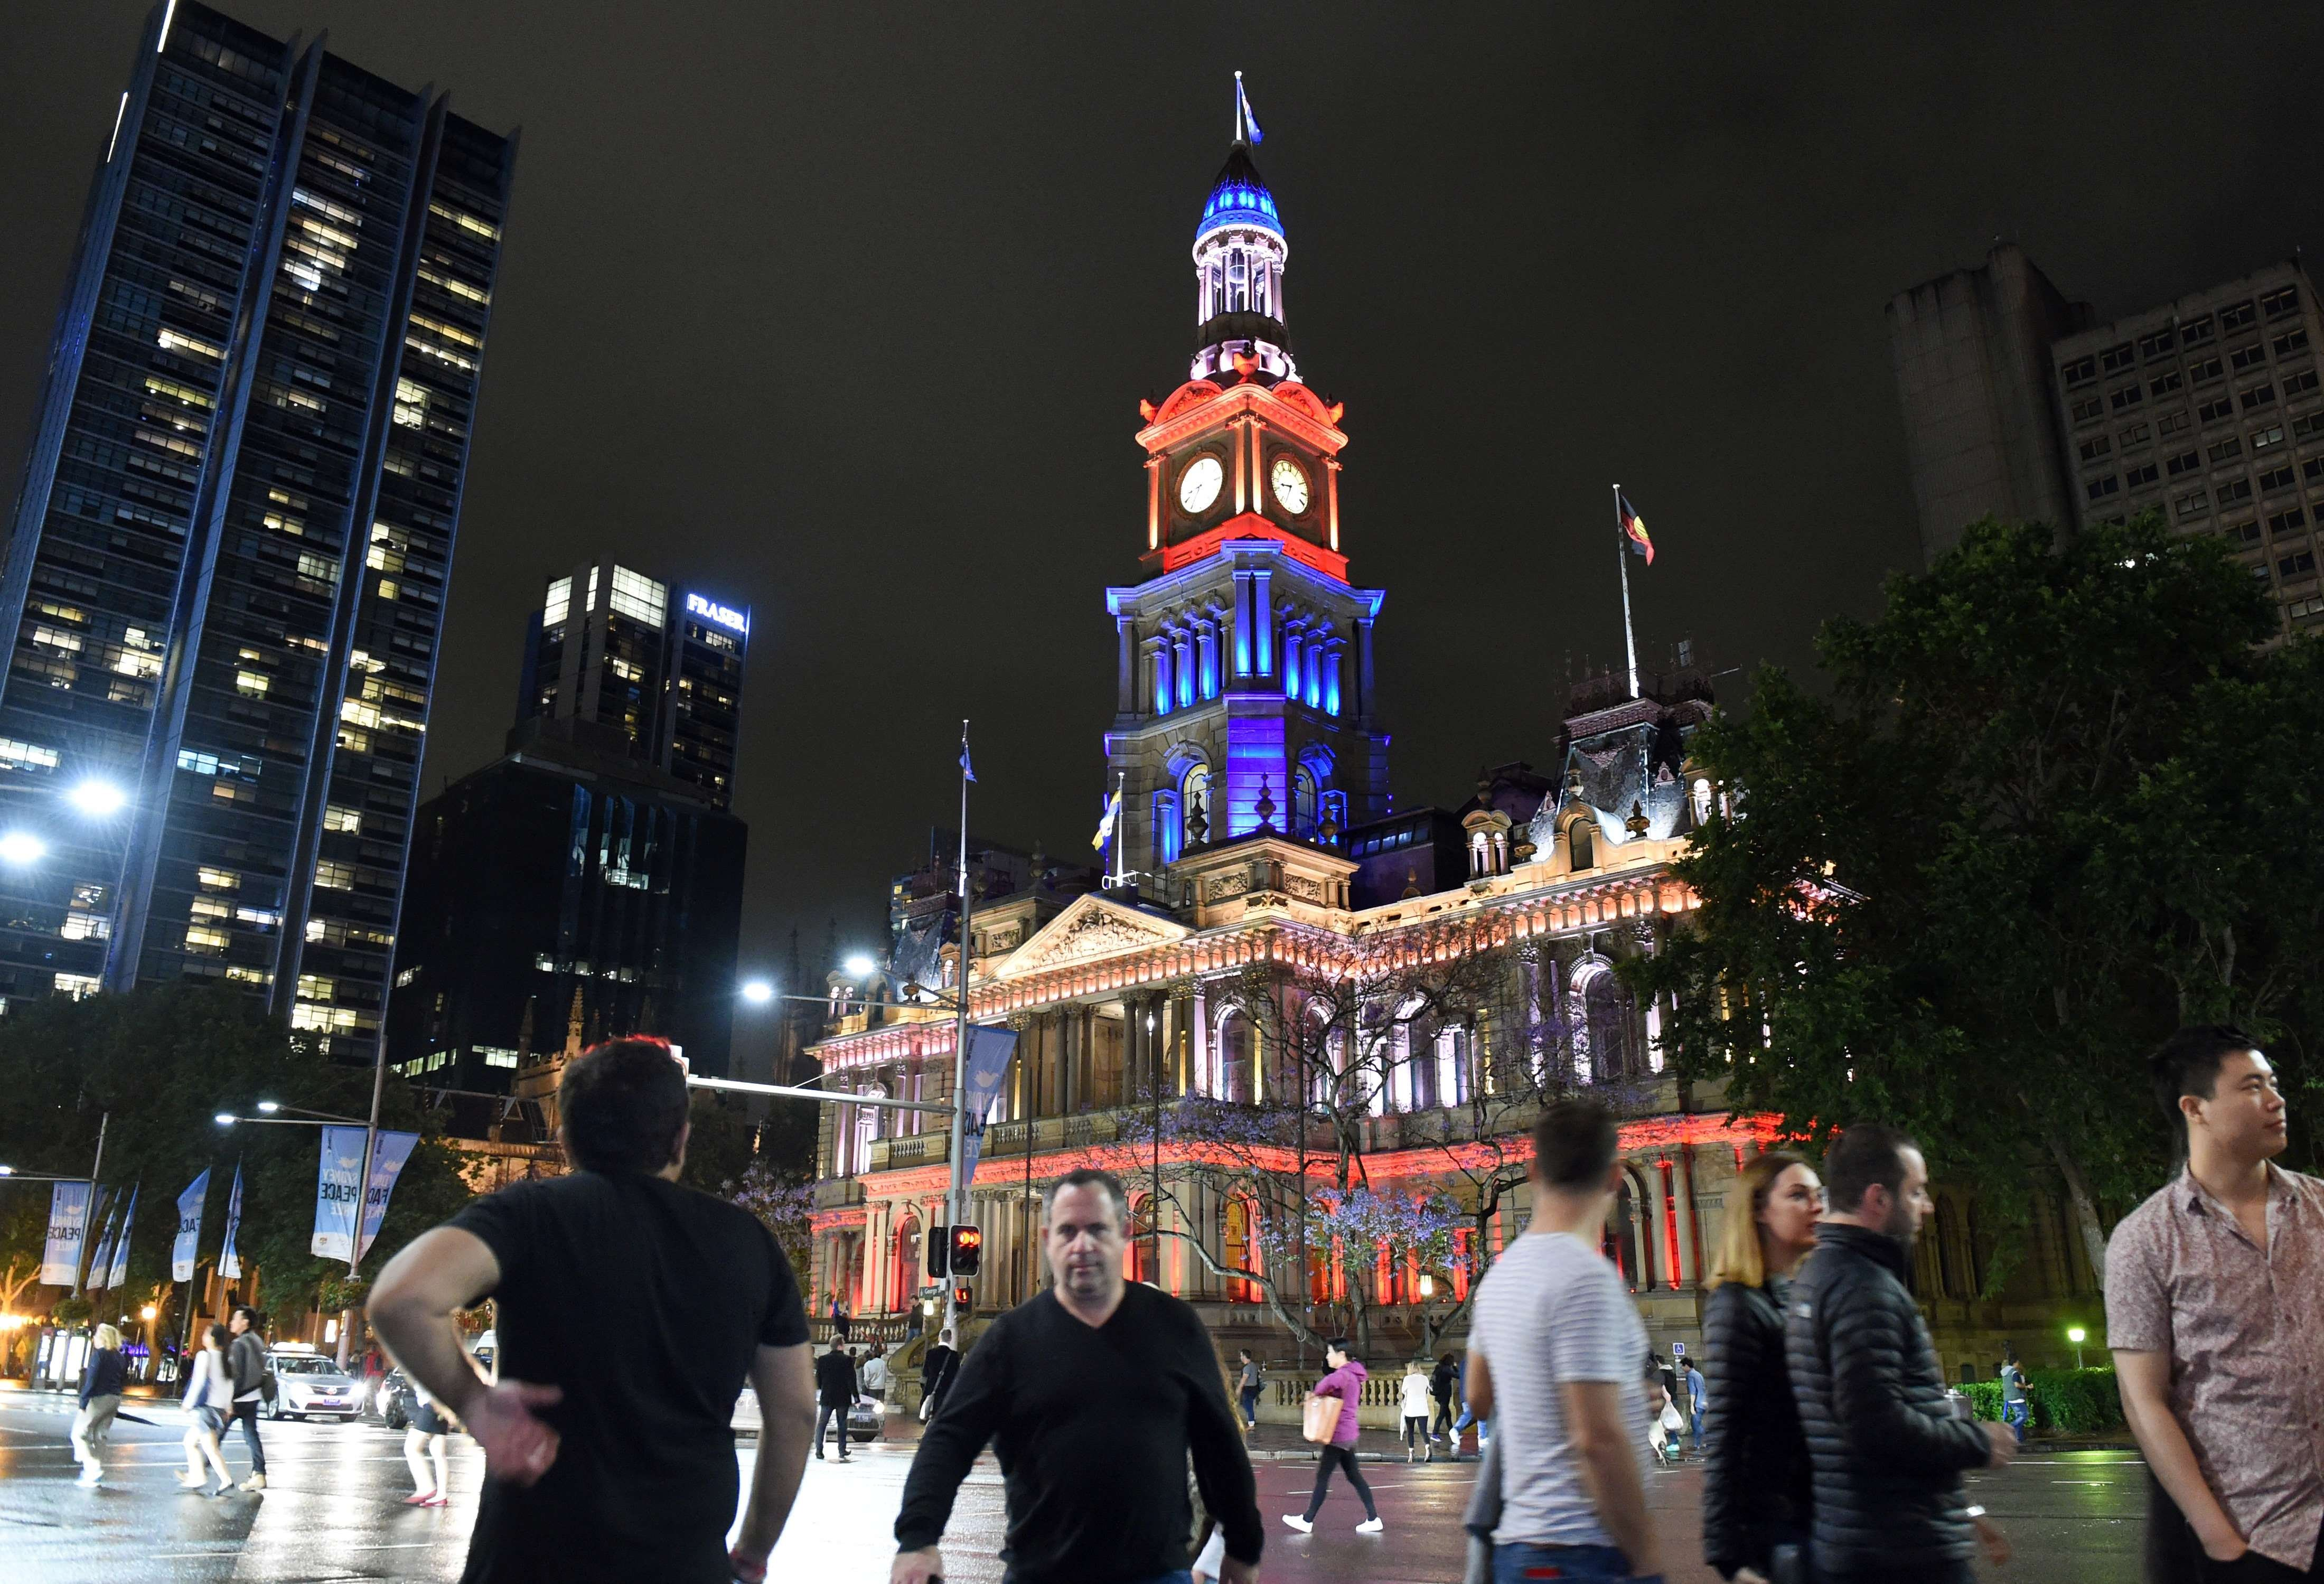 People walk past the Sydney Town Hall as it is lit in red, white and blue, resembling the colors of the French flag in Sydney, Australia on Nov. 14, 2015.